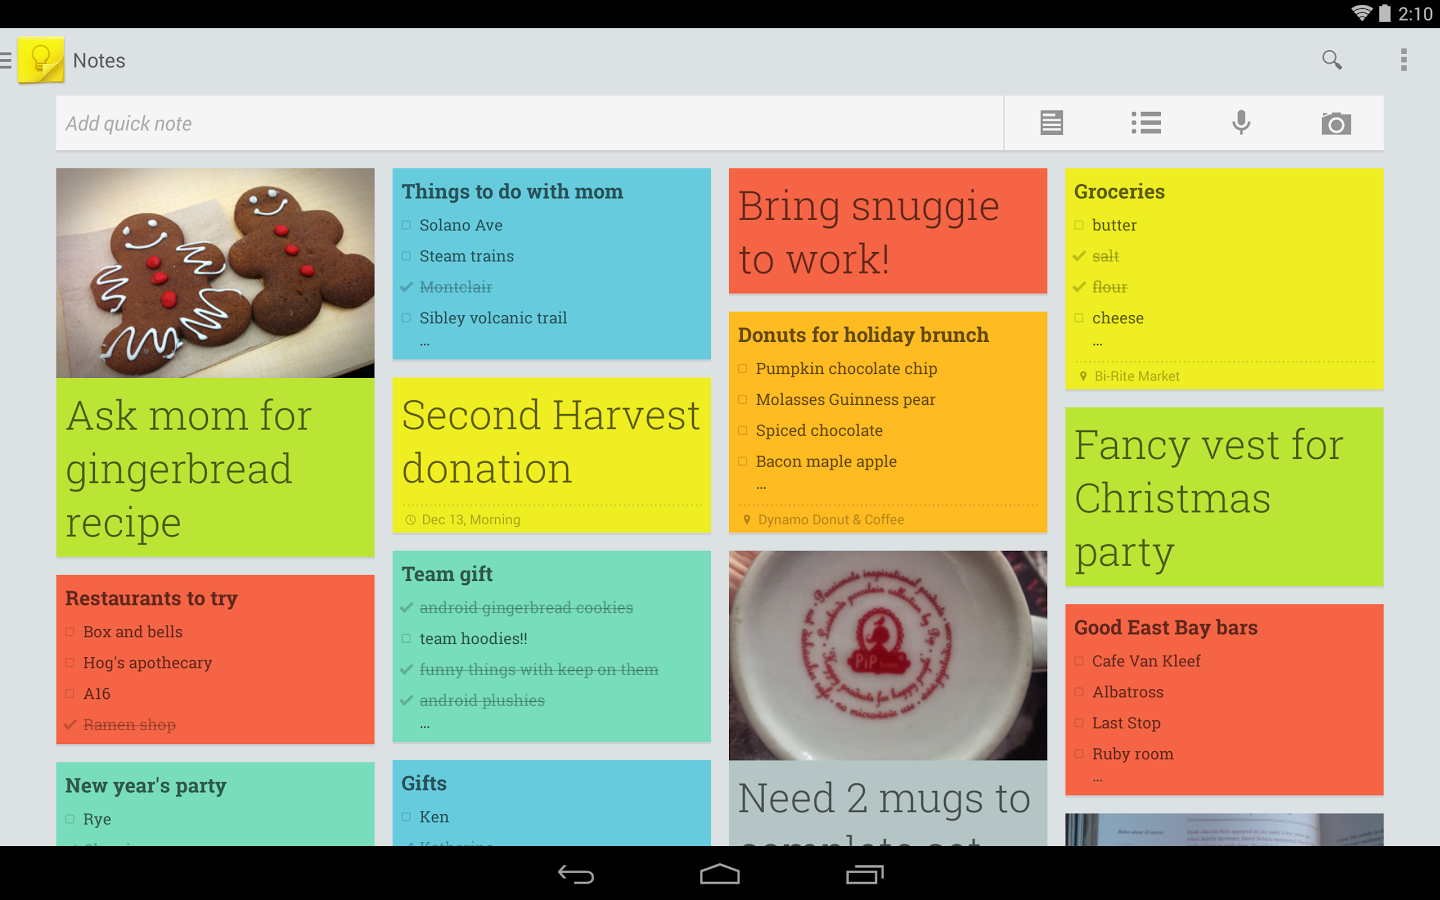 Notities in GoogleKeep